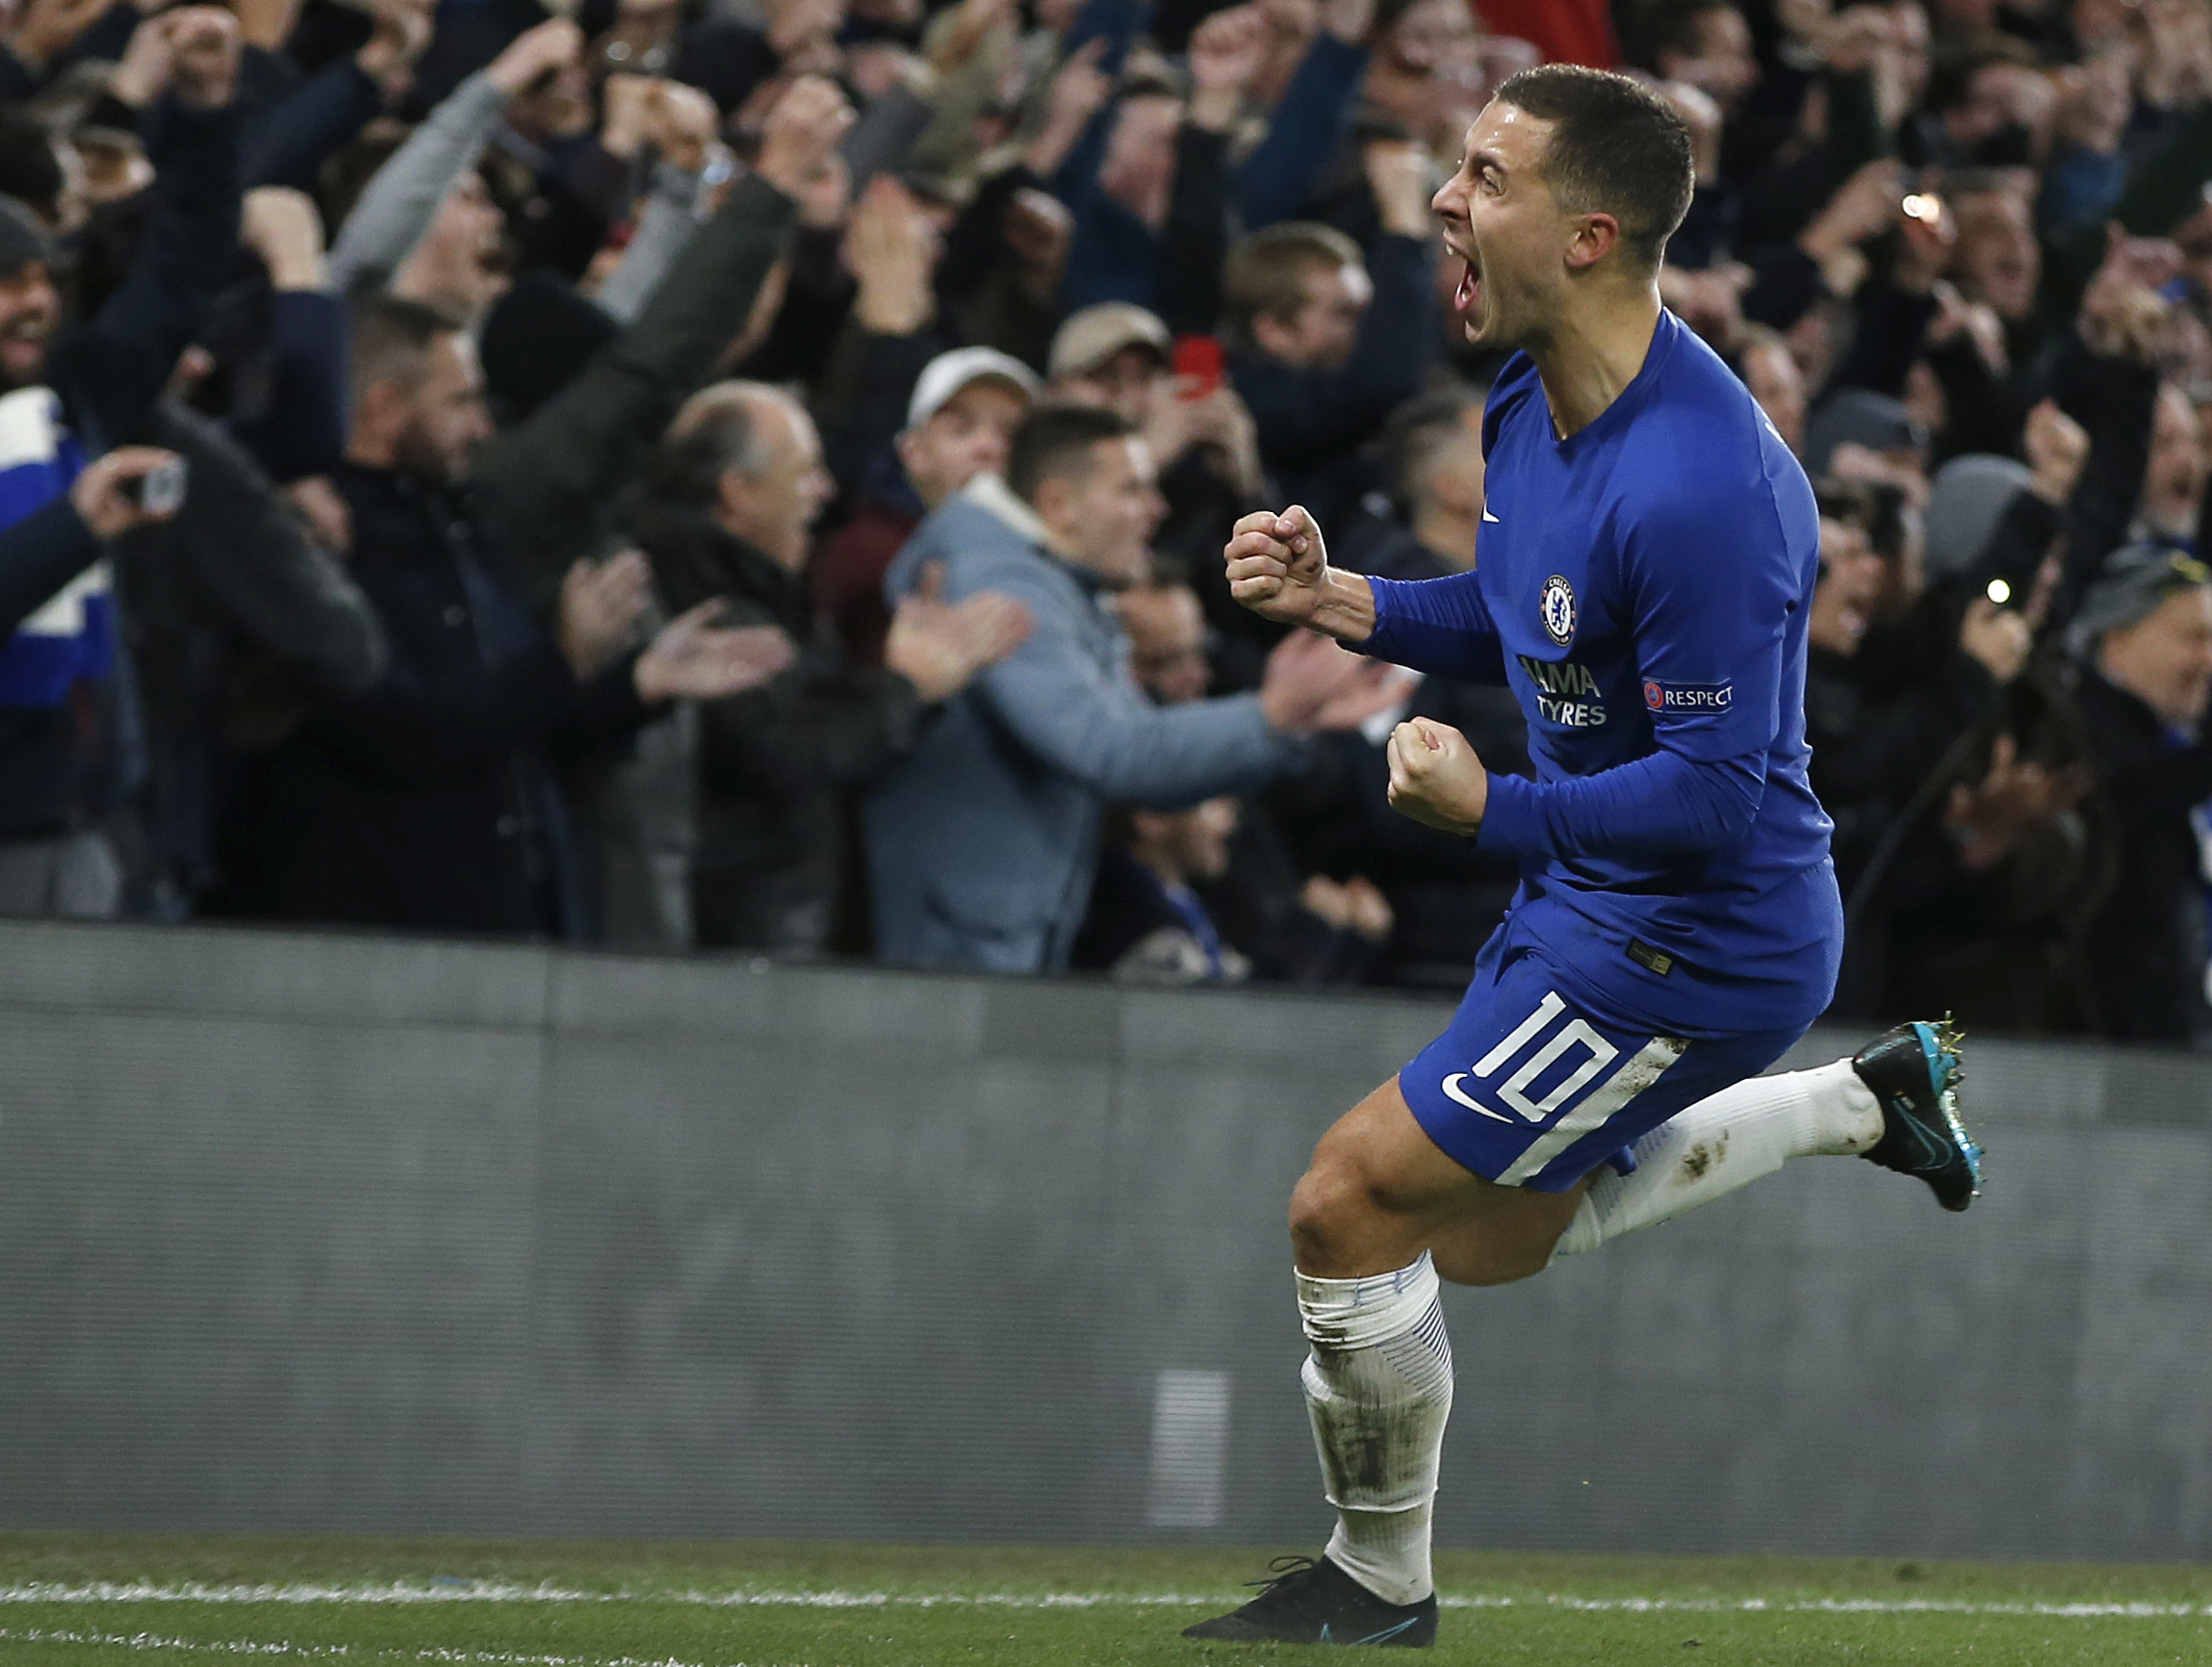 Chelsea's Eden Hazard can be in frame for Ballon d'Or - Antonio Conte